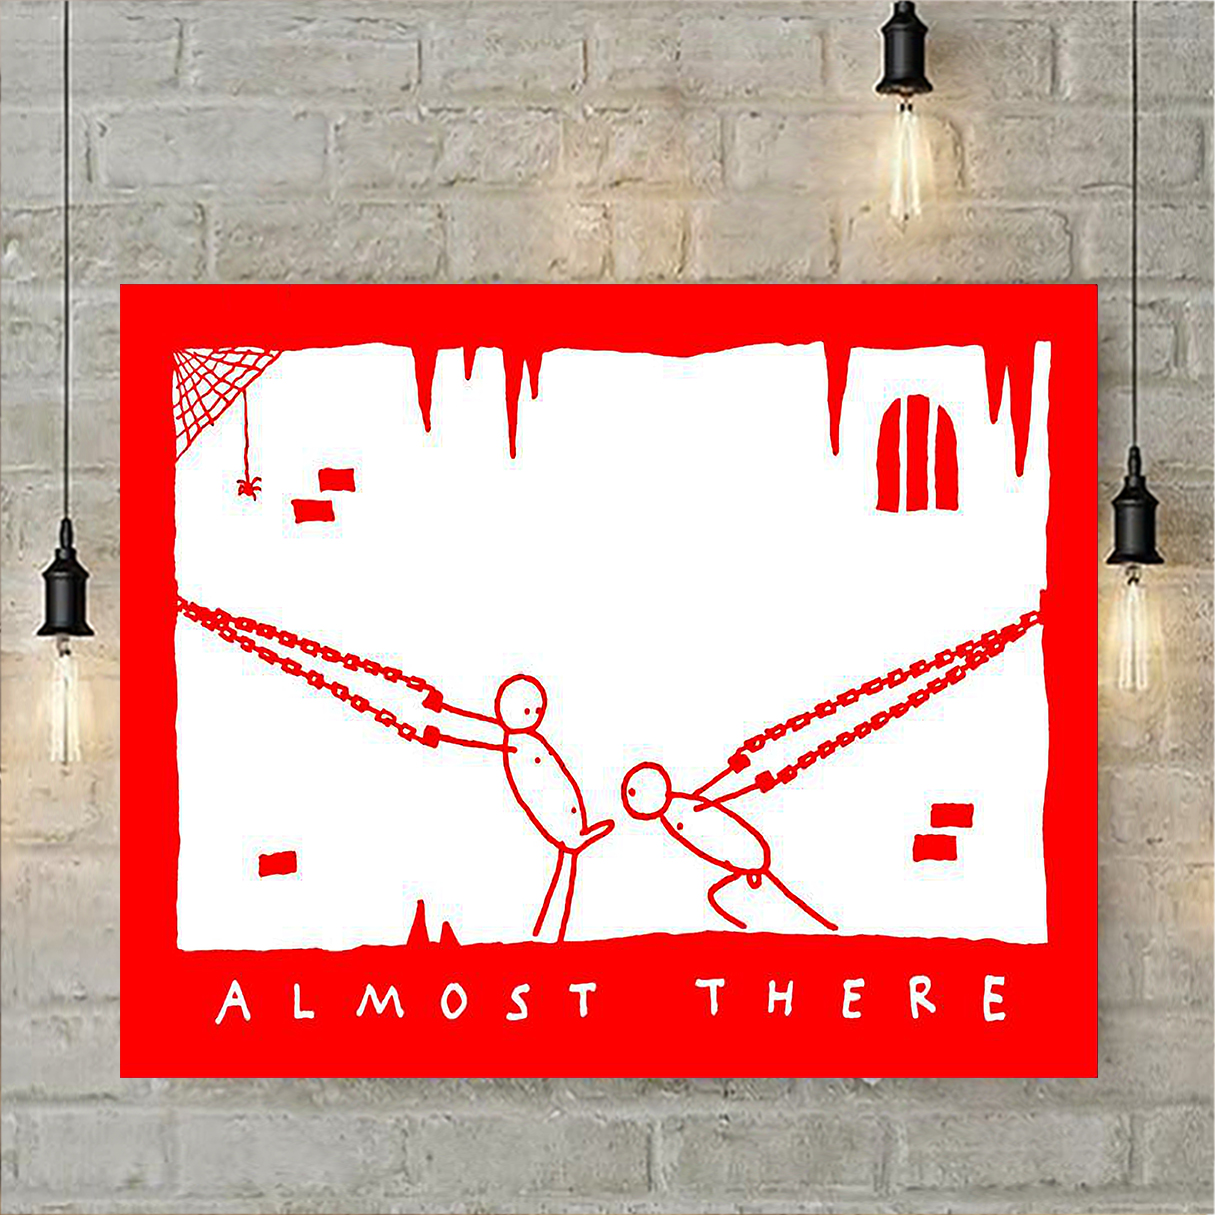 Almost there poster A1